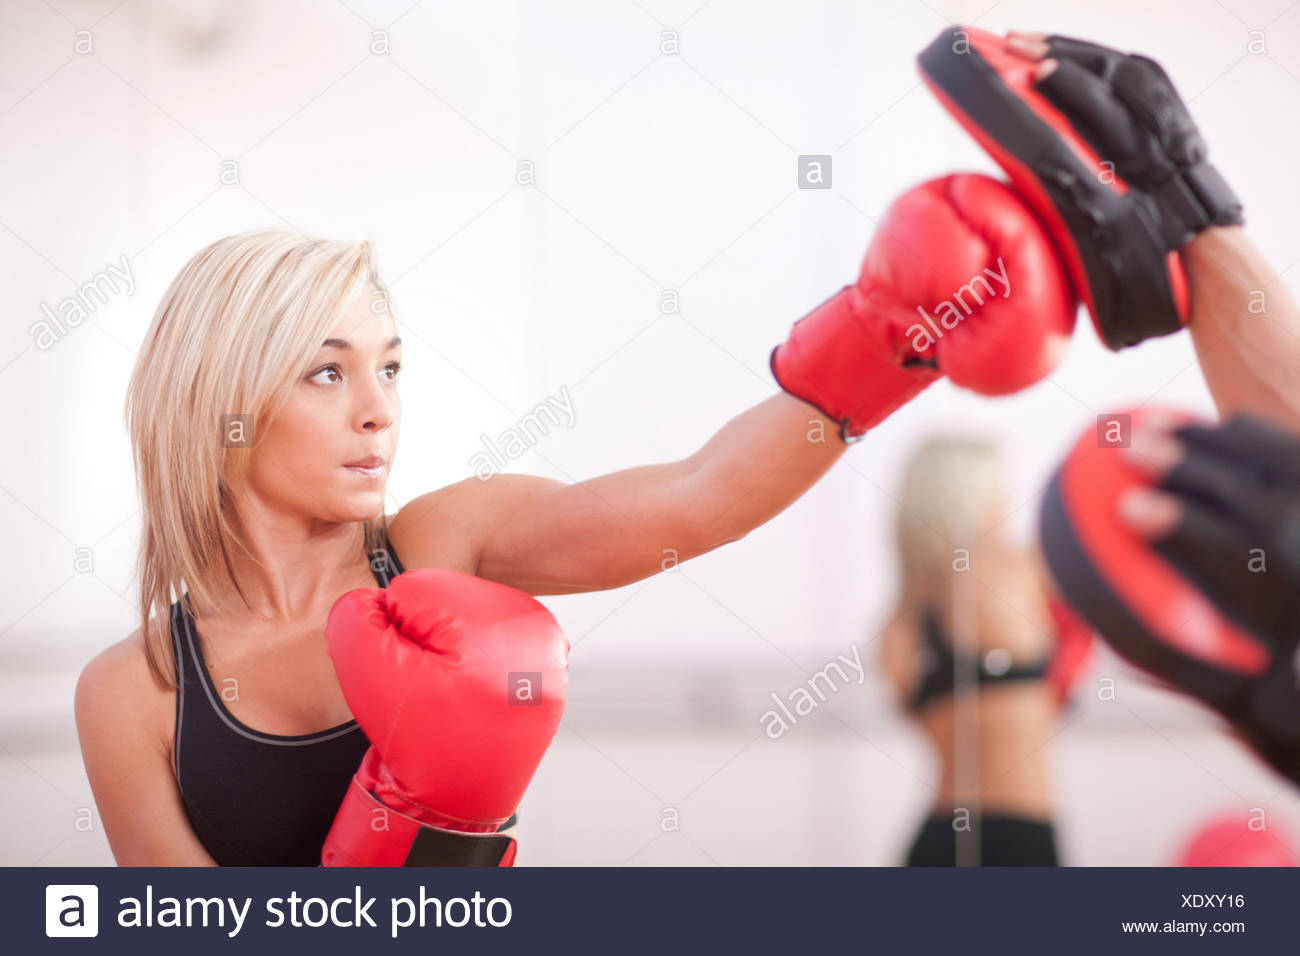 Young woman training in boxing gloves - Stock Image